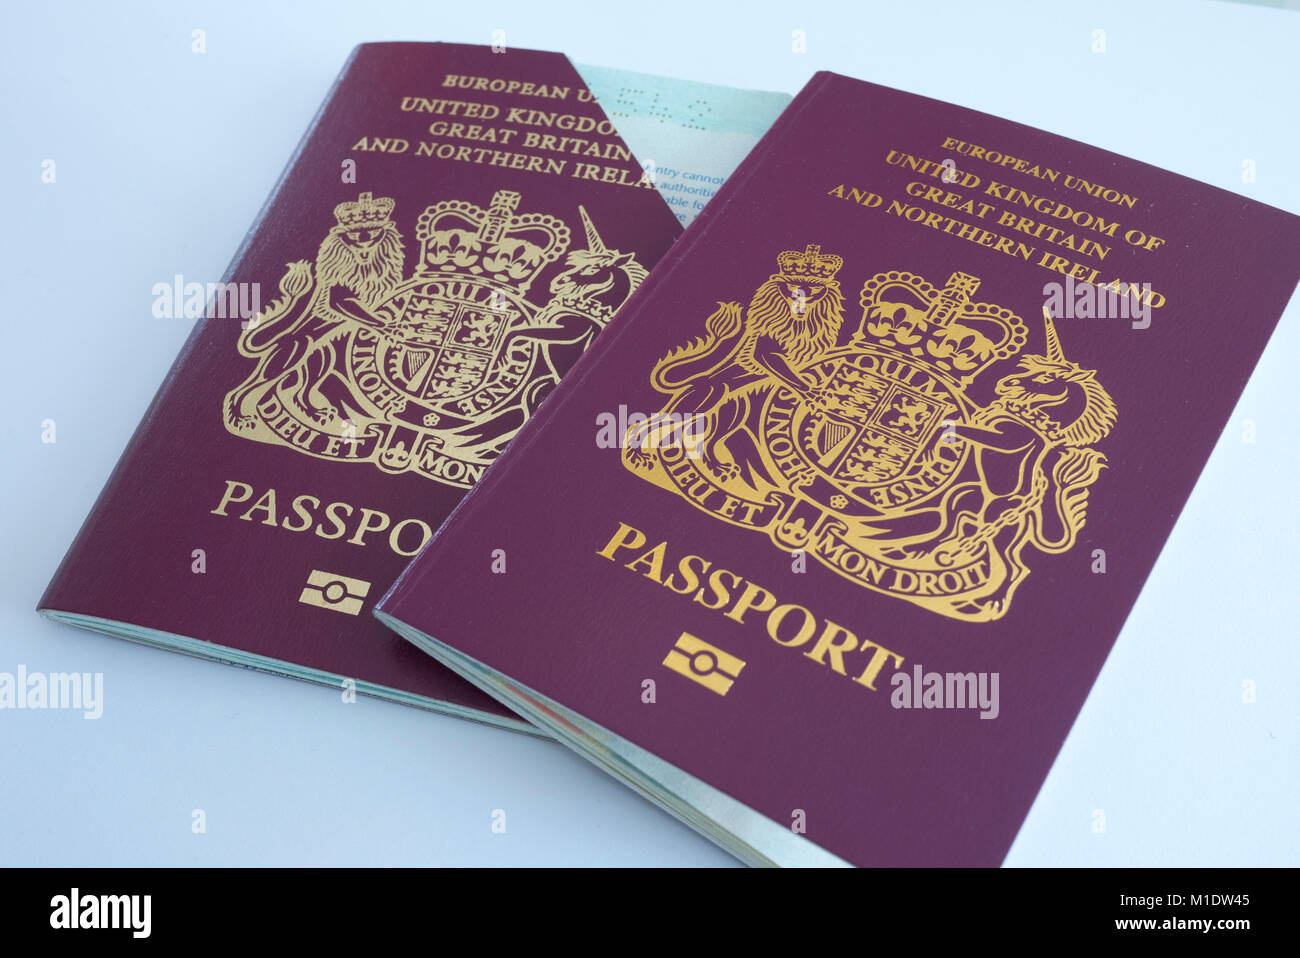 Two UK Passports, one cancelled and a renewal, UK. - Stock Image